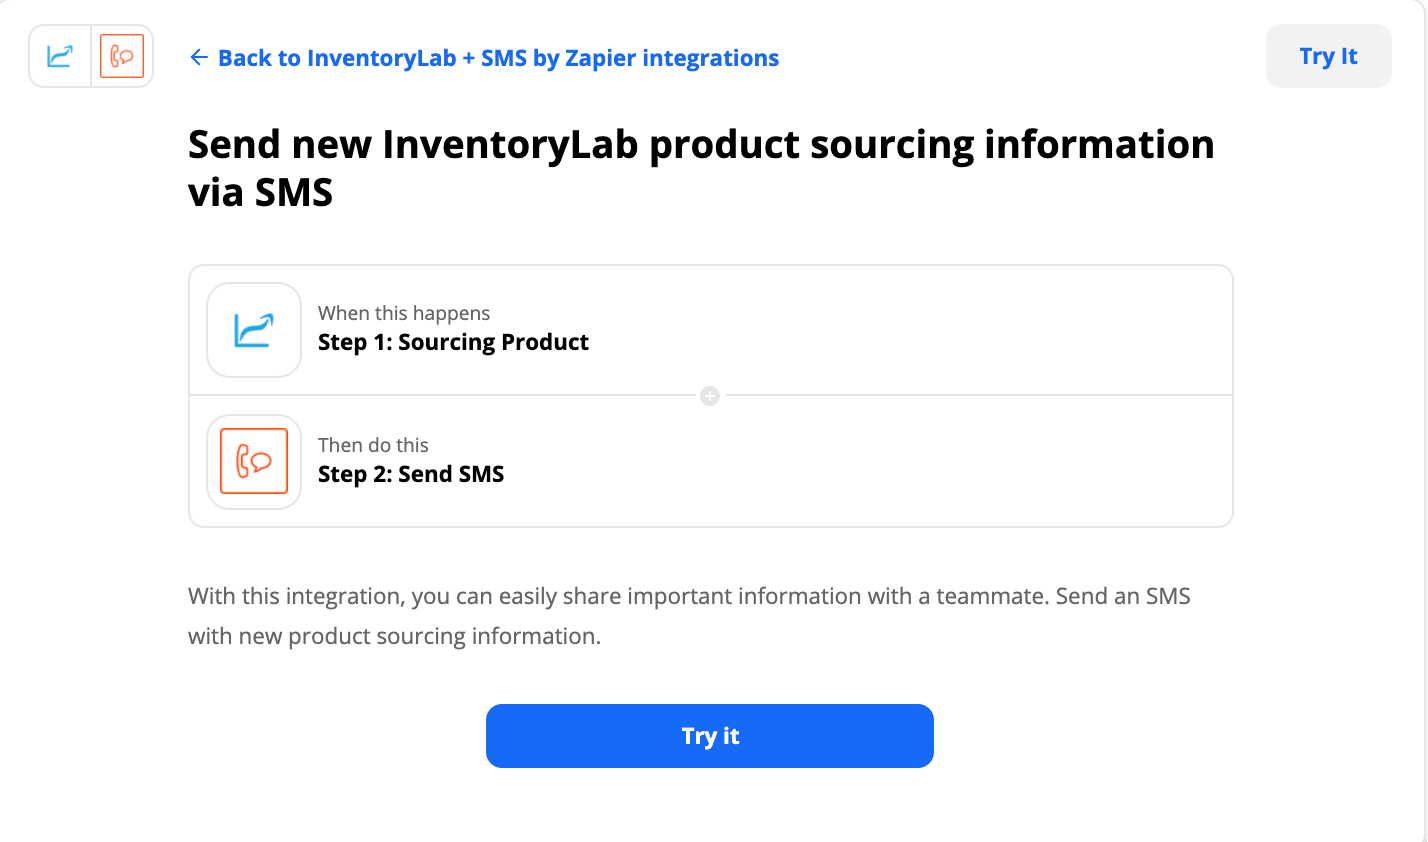 Cursor_and_Send_new_InventoryLab_product_sourcing_information_via_SMS.png